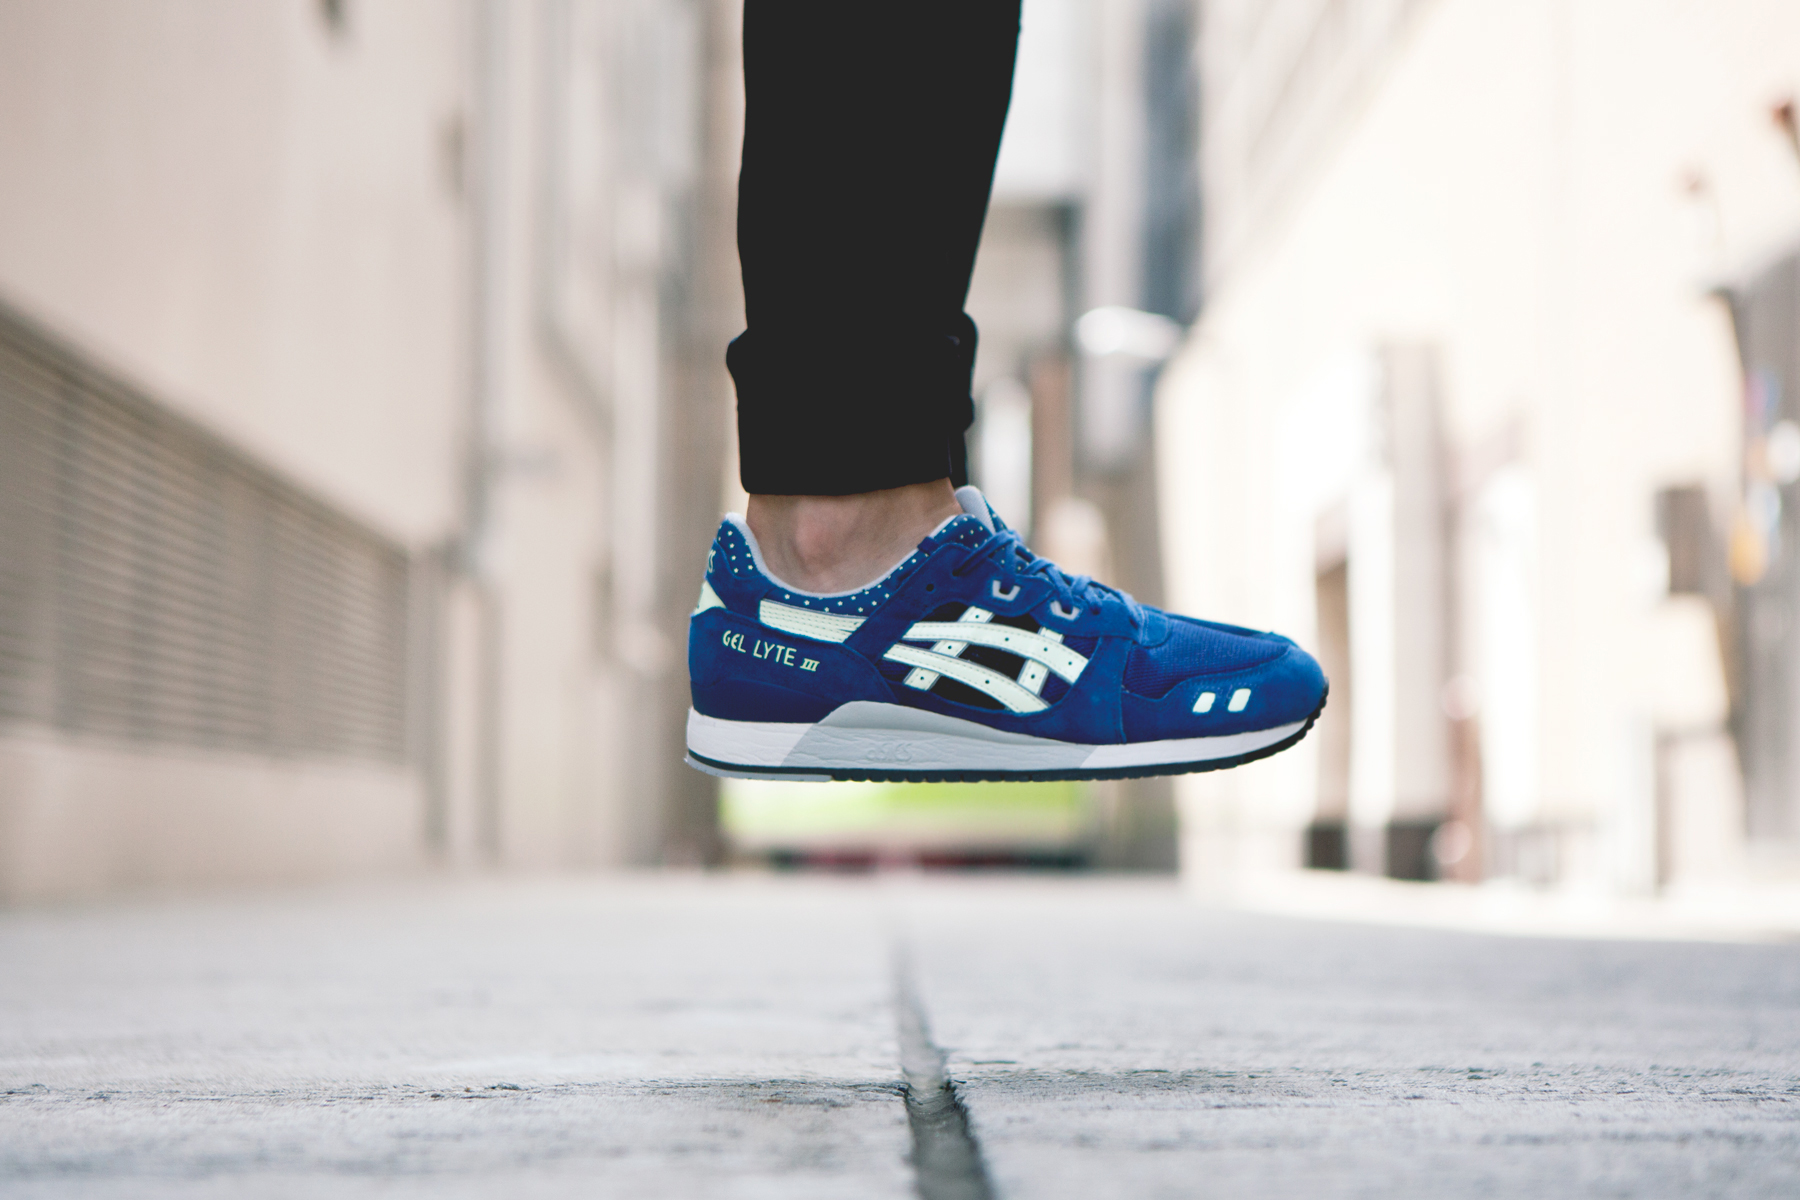 asics 2014 fall winter gel lyte iii